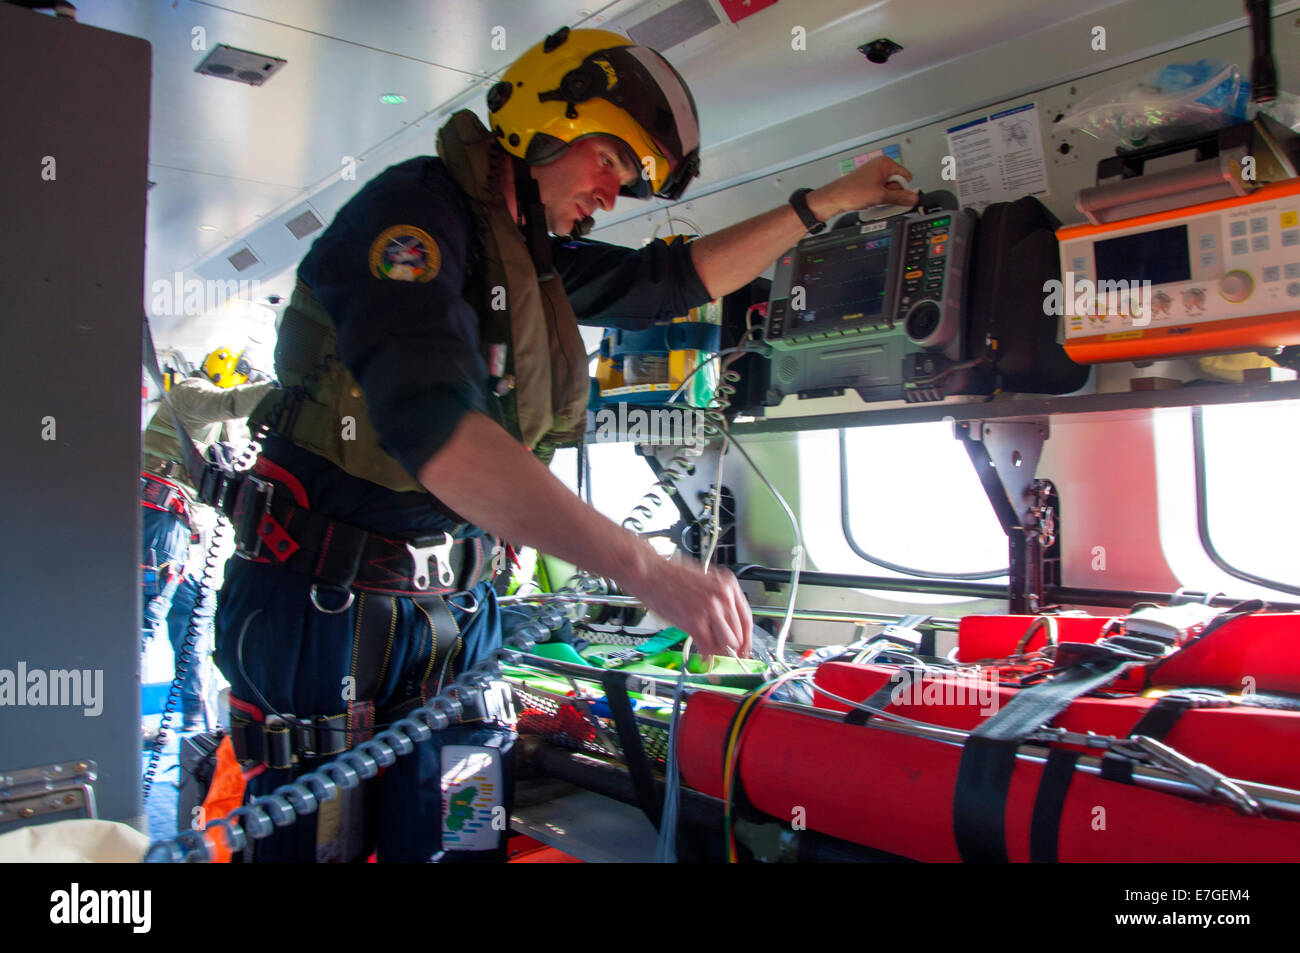 chc helicopters careers with Stock Photo Irish Coast Guard Ircg Garda Csta Na Hireann Sikorsky Helicopter Crew 73506836 on heli One furthermore 150216 Mst Irish Coast Guard And Chc Perform More Than 1000 Sar Missions In 2015 With Sikorsky S 92 Helicopter Fleet further Stock Photo Irish Coast Guard Ircg Garda Csta Na Hireann Sikorsky Helicopter Crew 73506836 in addition Home together with Home.